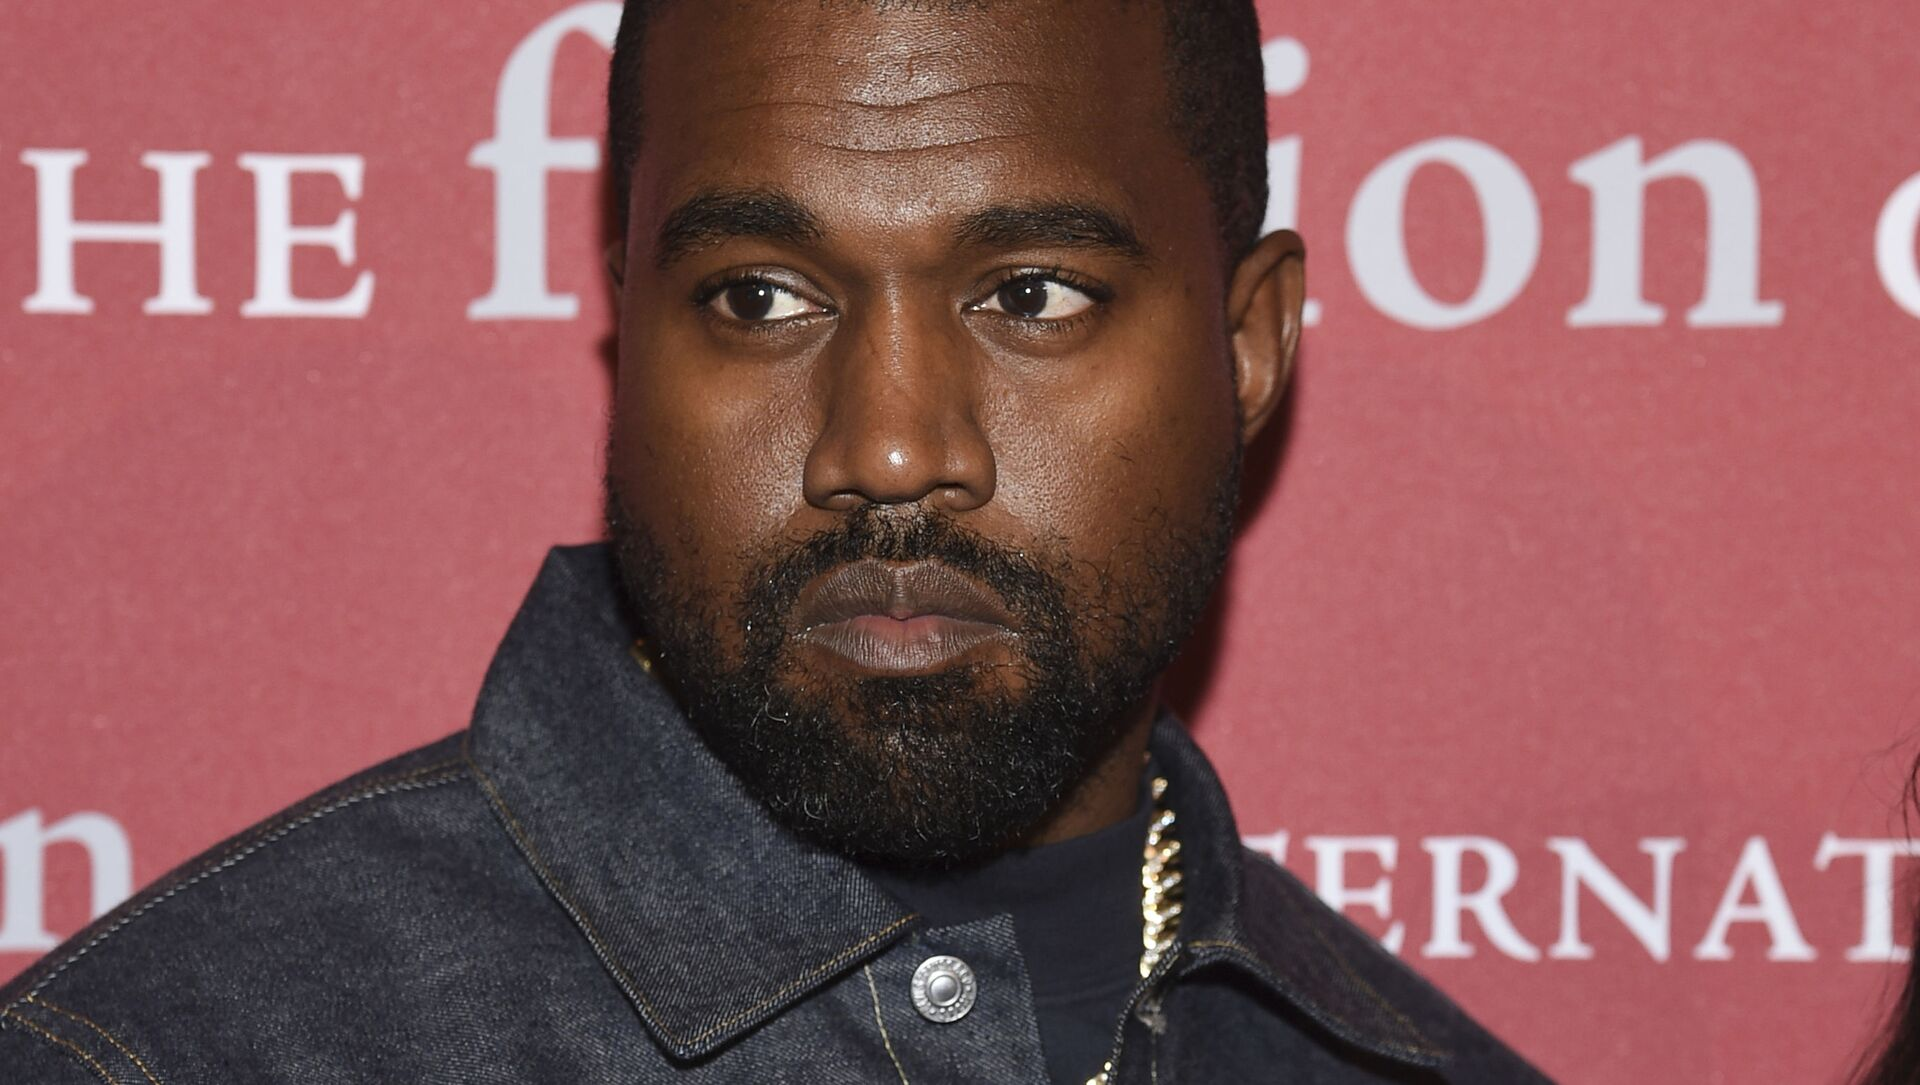 Recording artist Kanye West attends The Fashion Group International's annual Night of Stars gala at Cipriani Wall Street on Thursday, Oct. 24, 2019, in New York - Sputnik International, 1920, 28.07.2021